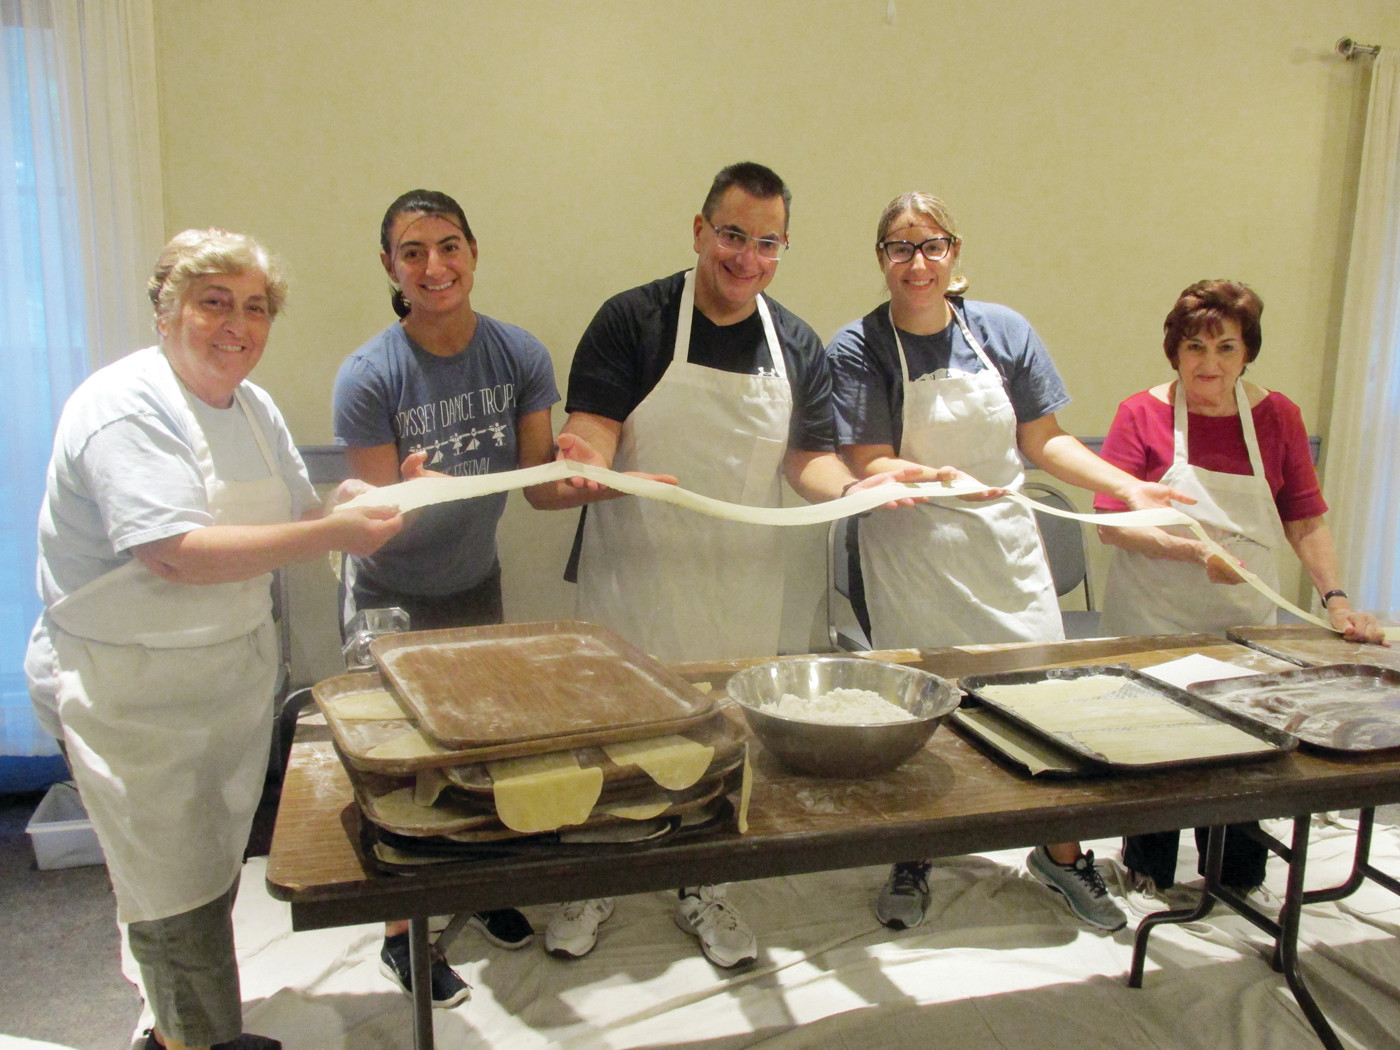 DOUGH DUTY: Among those many volunteers who helped make the ever-popular diples for this weekend's Cranston Greek Festival are (from left) Koula Rougas, Eleni Grammas, Kosta Grammas, Elizabeth Grammas and Angela Provost.